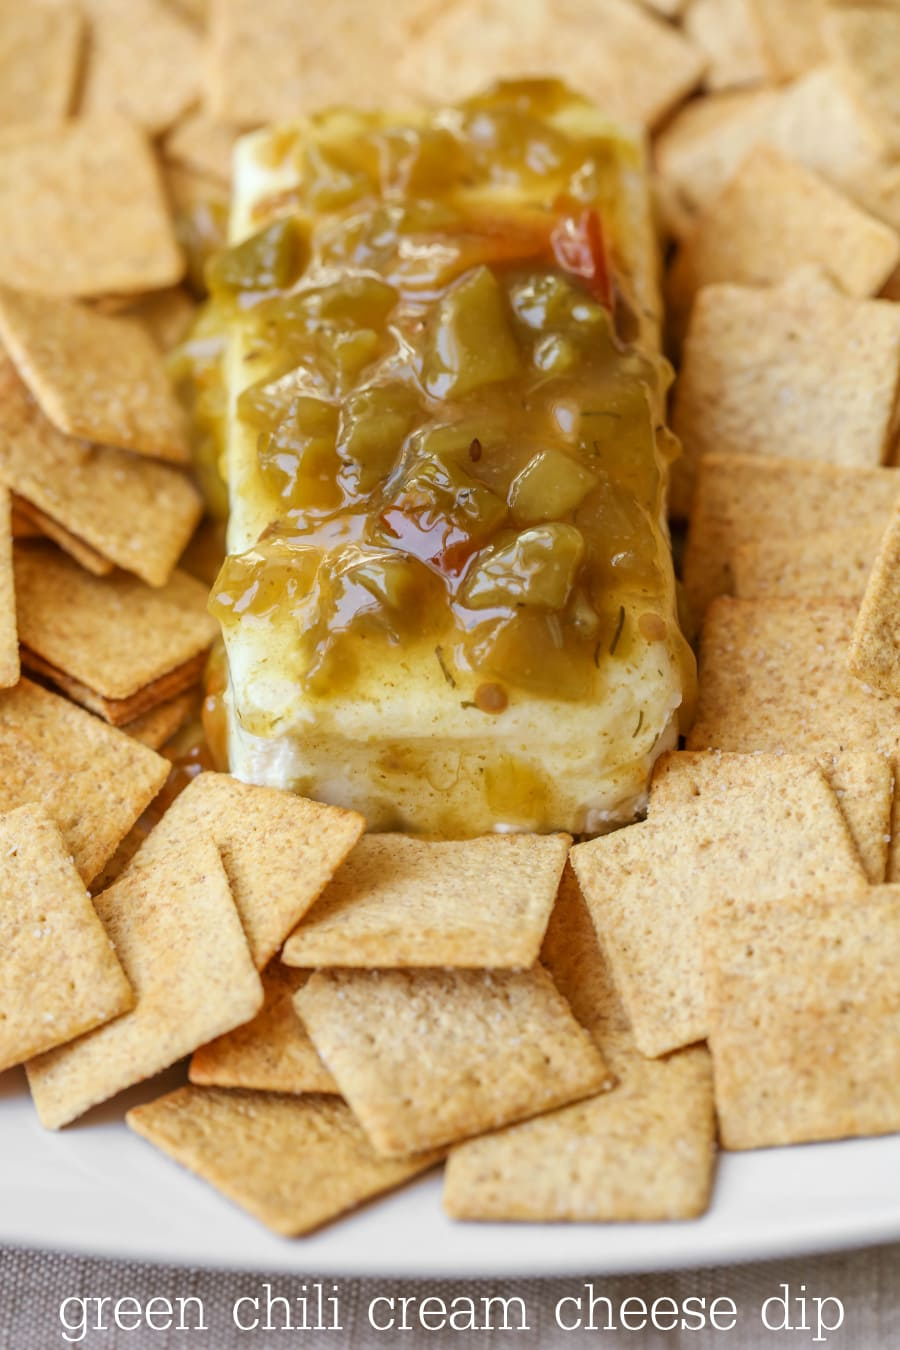 Green Chili Cream Cheese Dip - one of our favorite appetizers that is delicious and takes just 1 minute to make!!